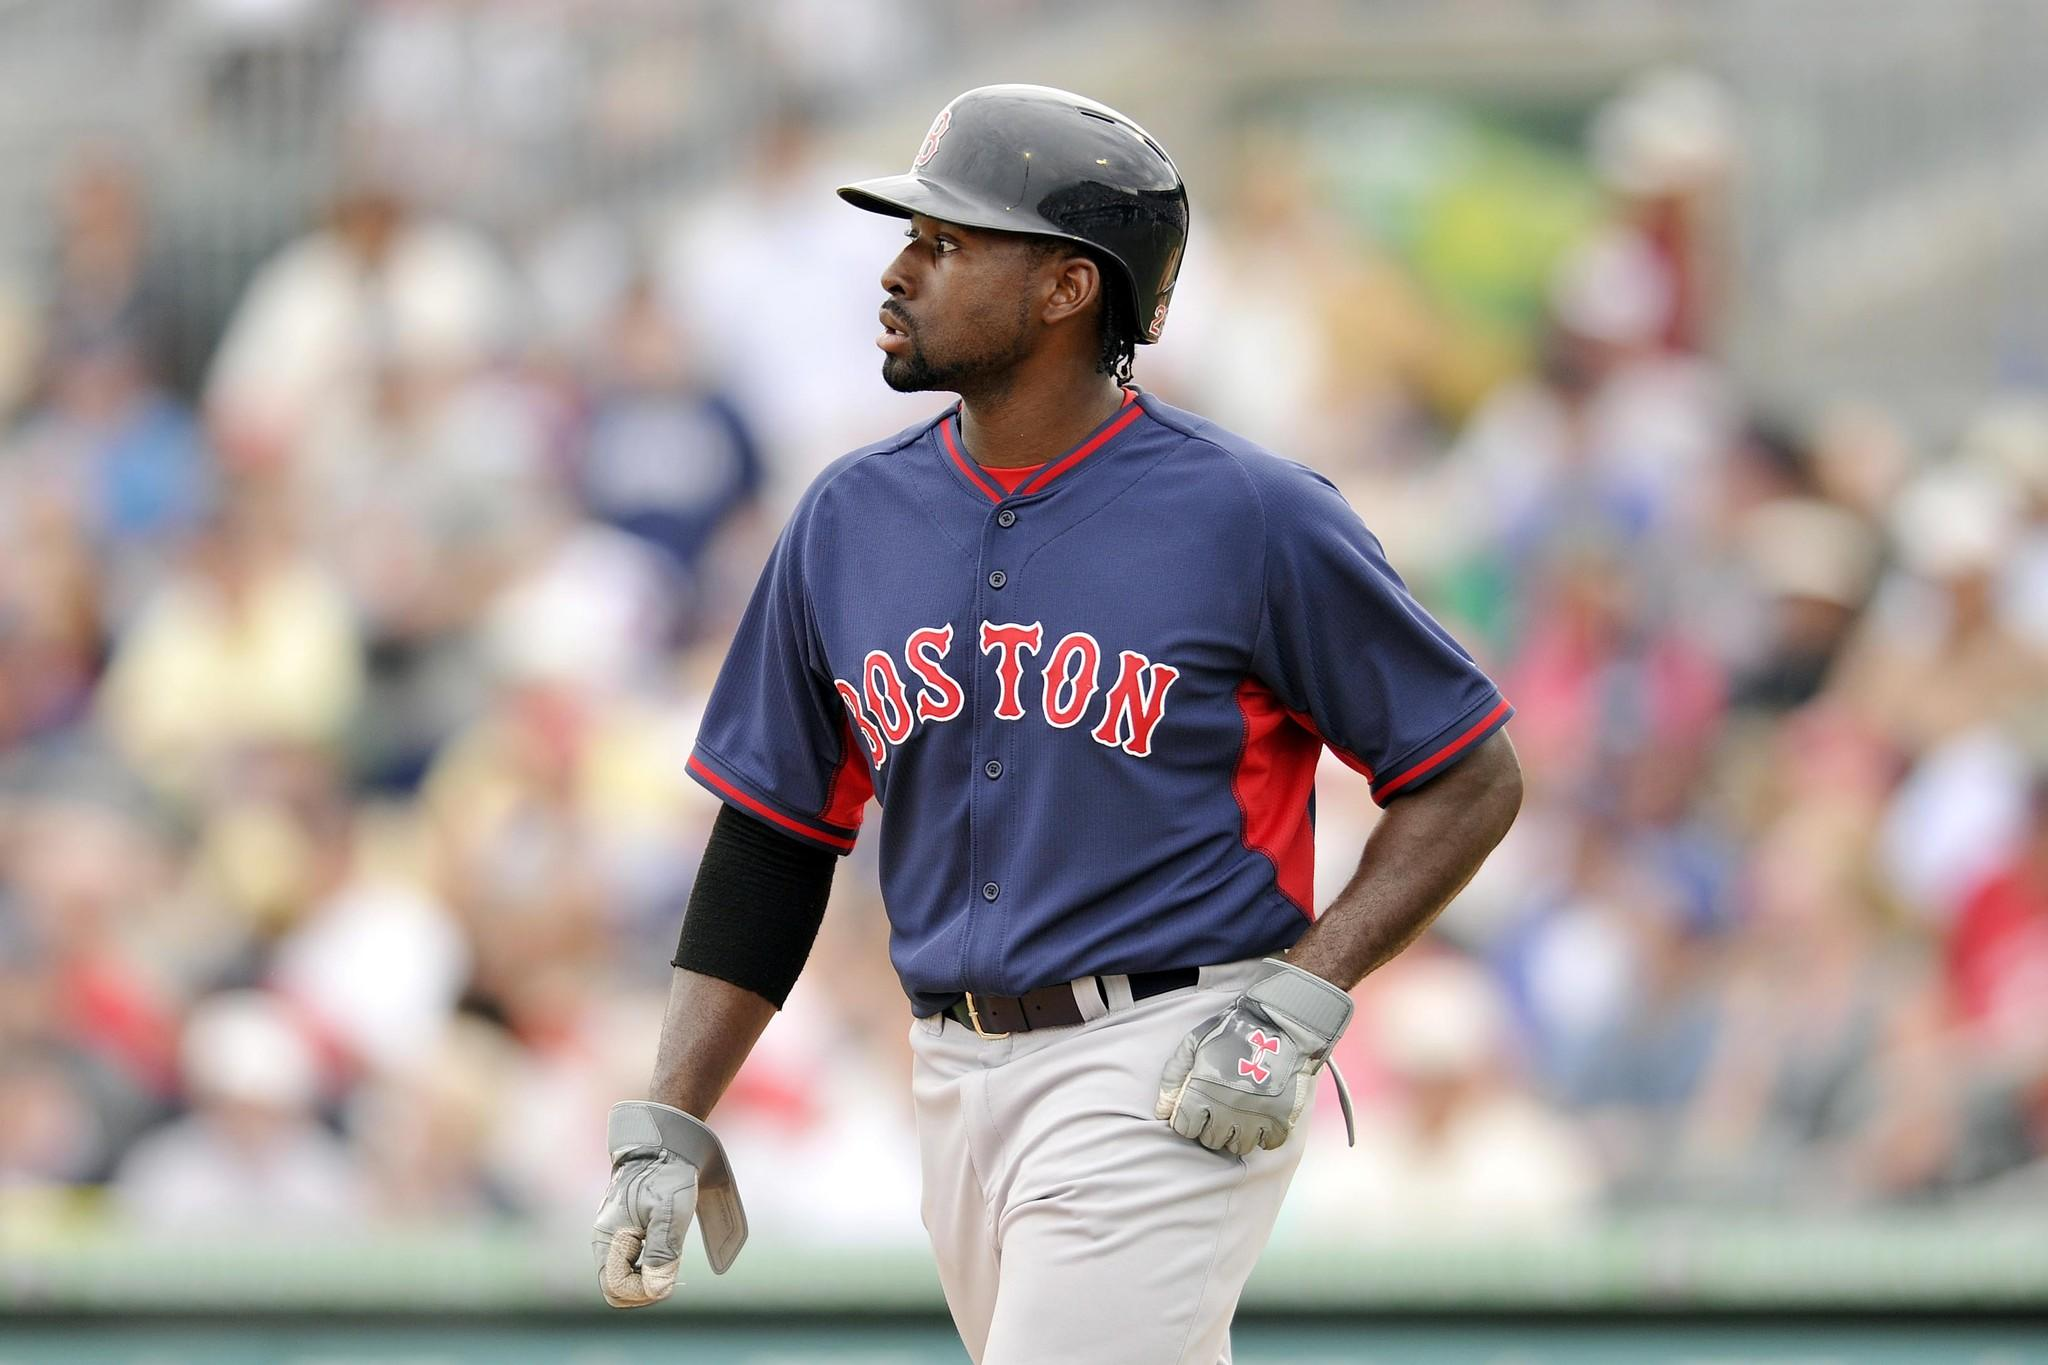 Center fielder Jackie Bradley Jr. was the only player in Thursday's lineup against the Miami Marlins expected to make the Red Sox's Opening Day roster.